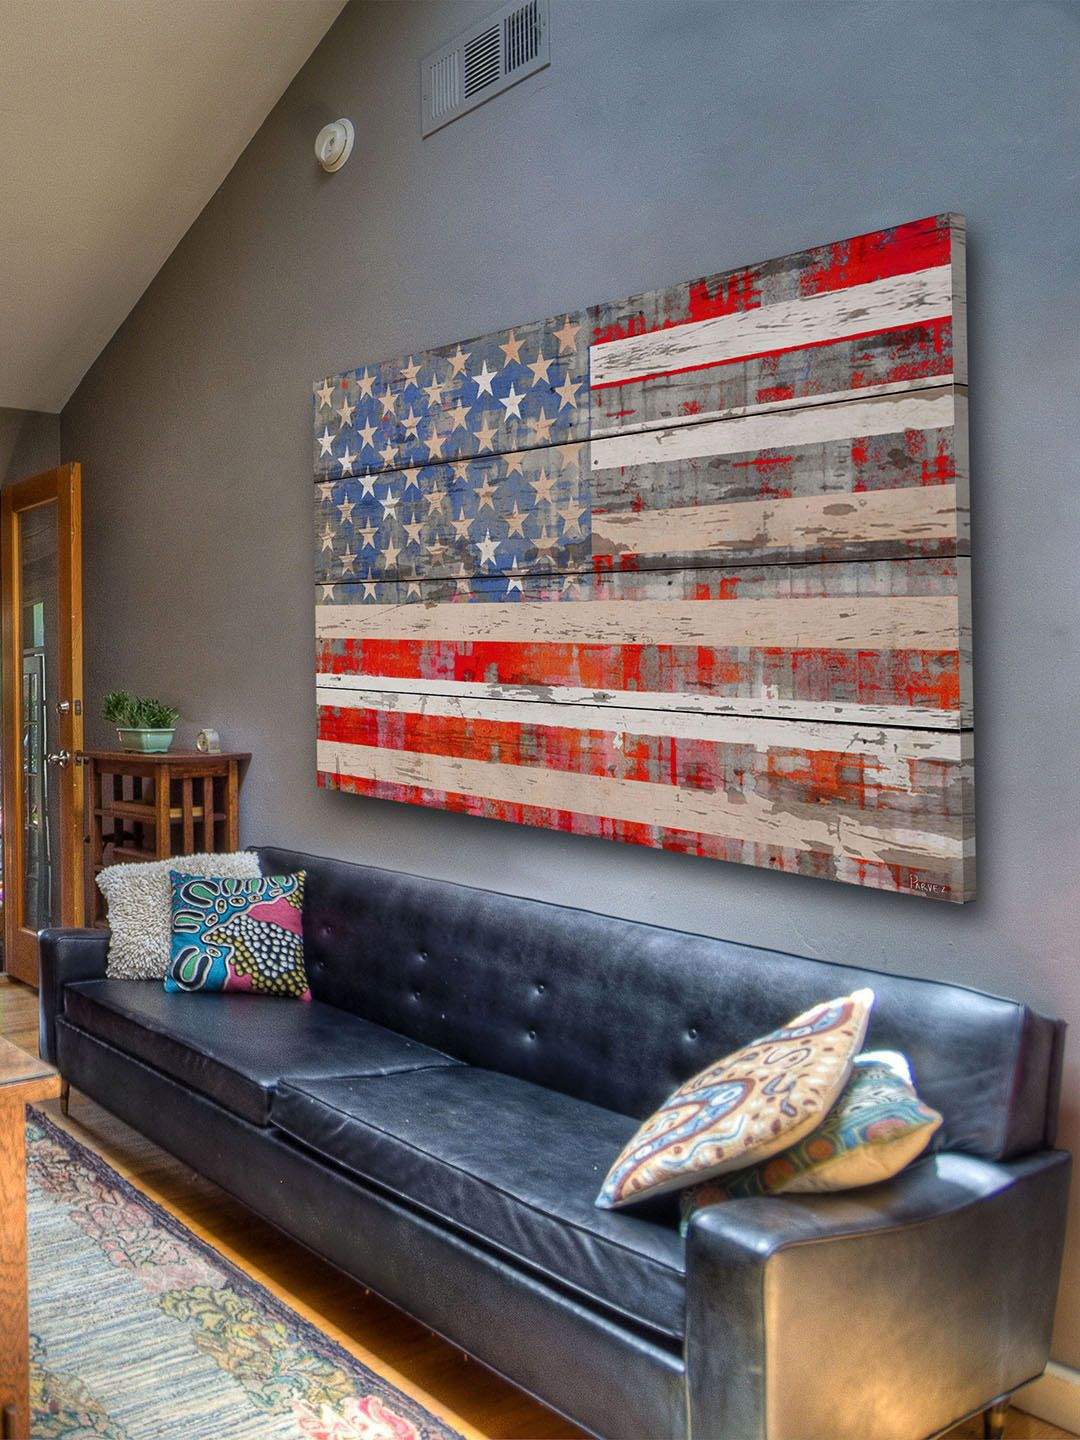 American Dream Reclaimed Wood By Parvez Taj At Gilt House  # Gadsden Muebles